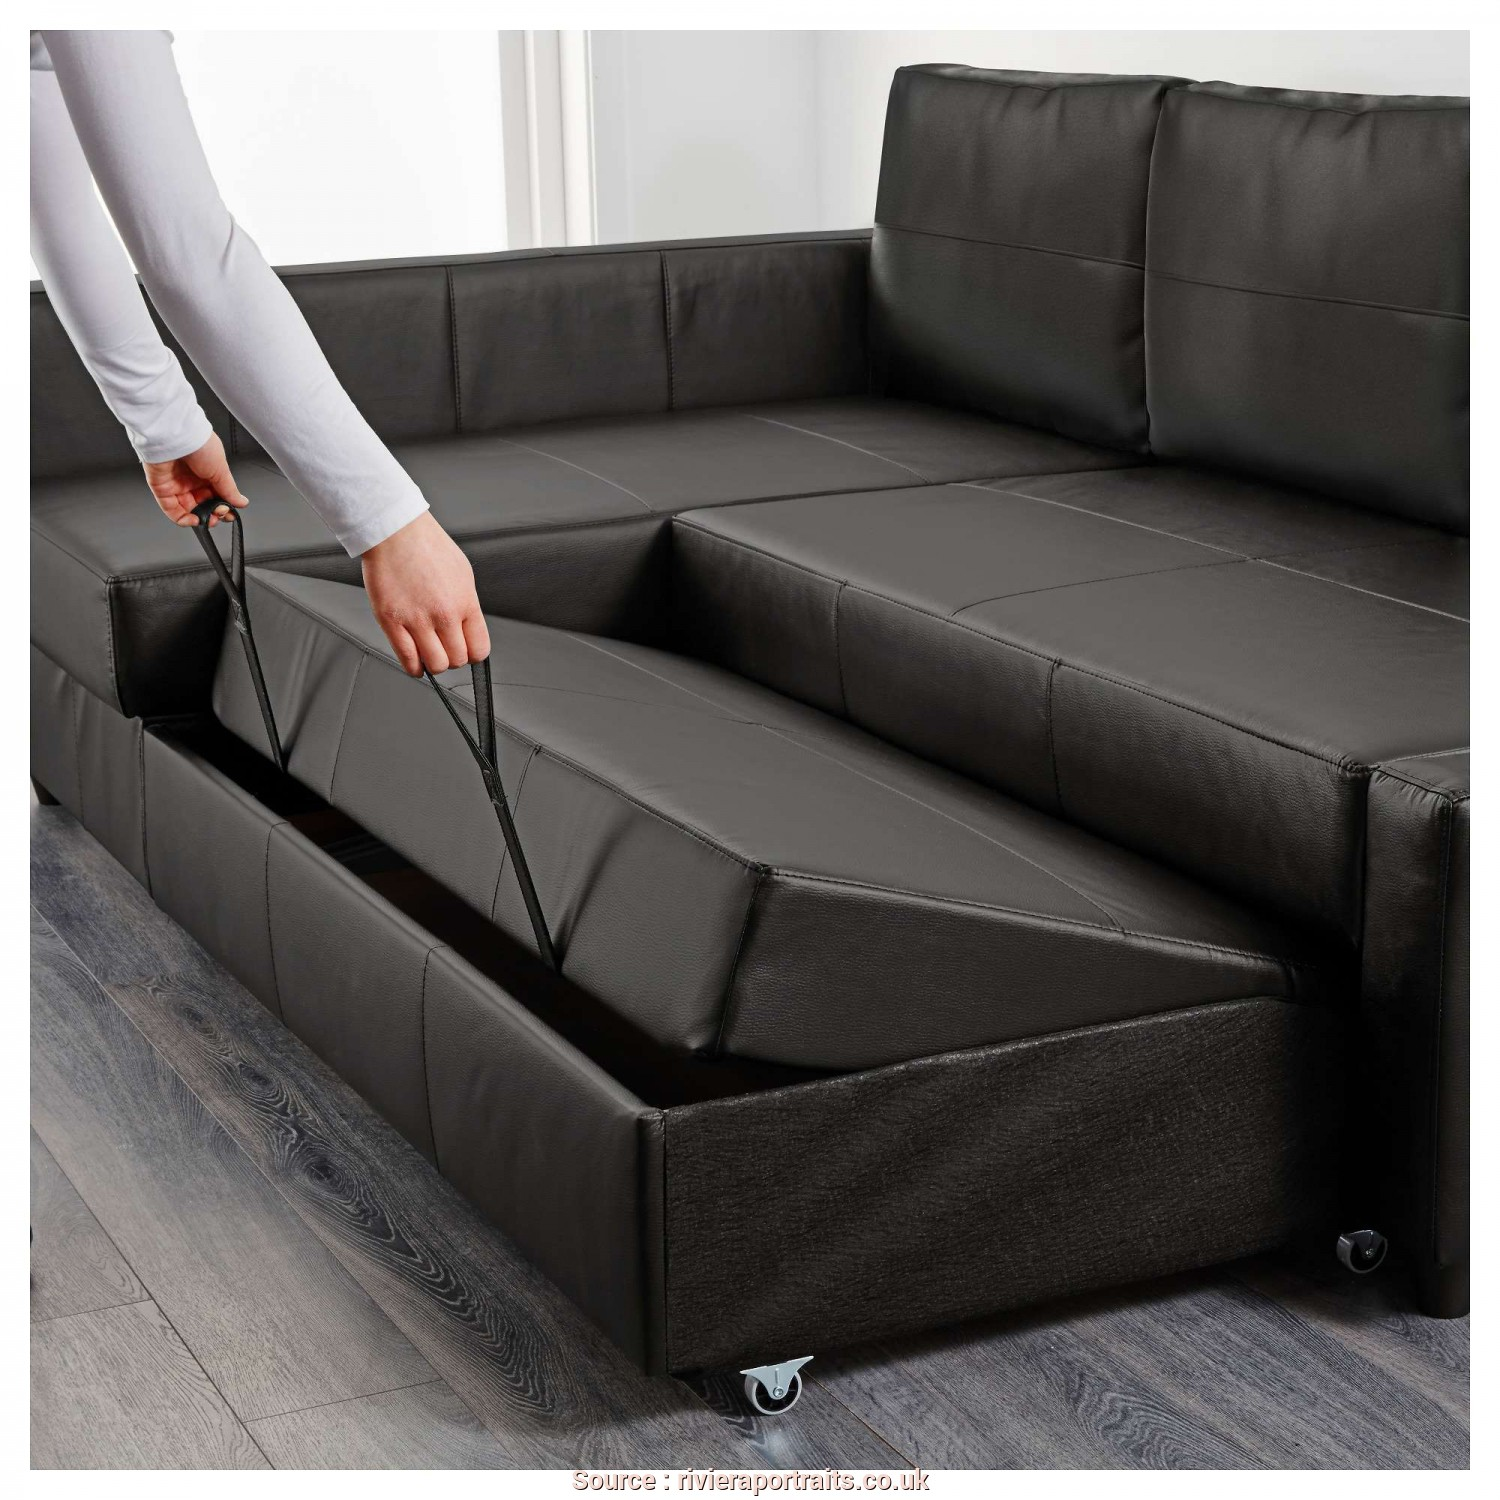 Vilasund Ikea Uk, Costoso Fascinating Friheten Sleeper Sofa Unmisetorg Picture Of Package Di Ions Trend, Popular Friheten Package Dimensions